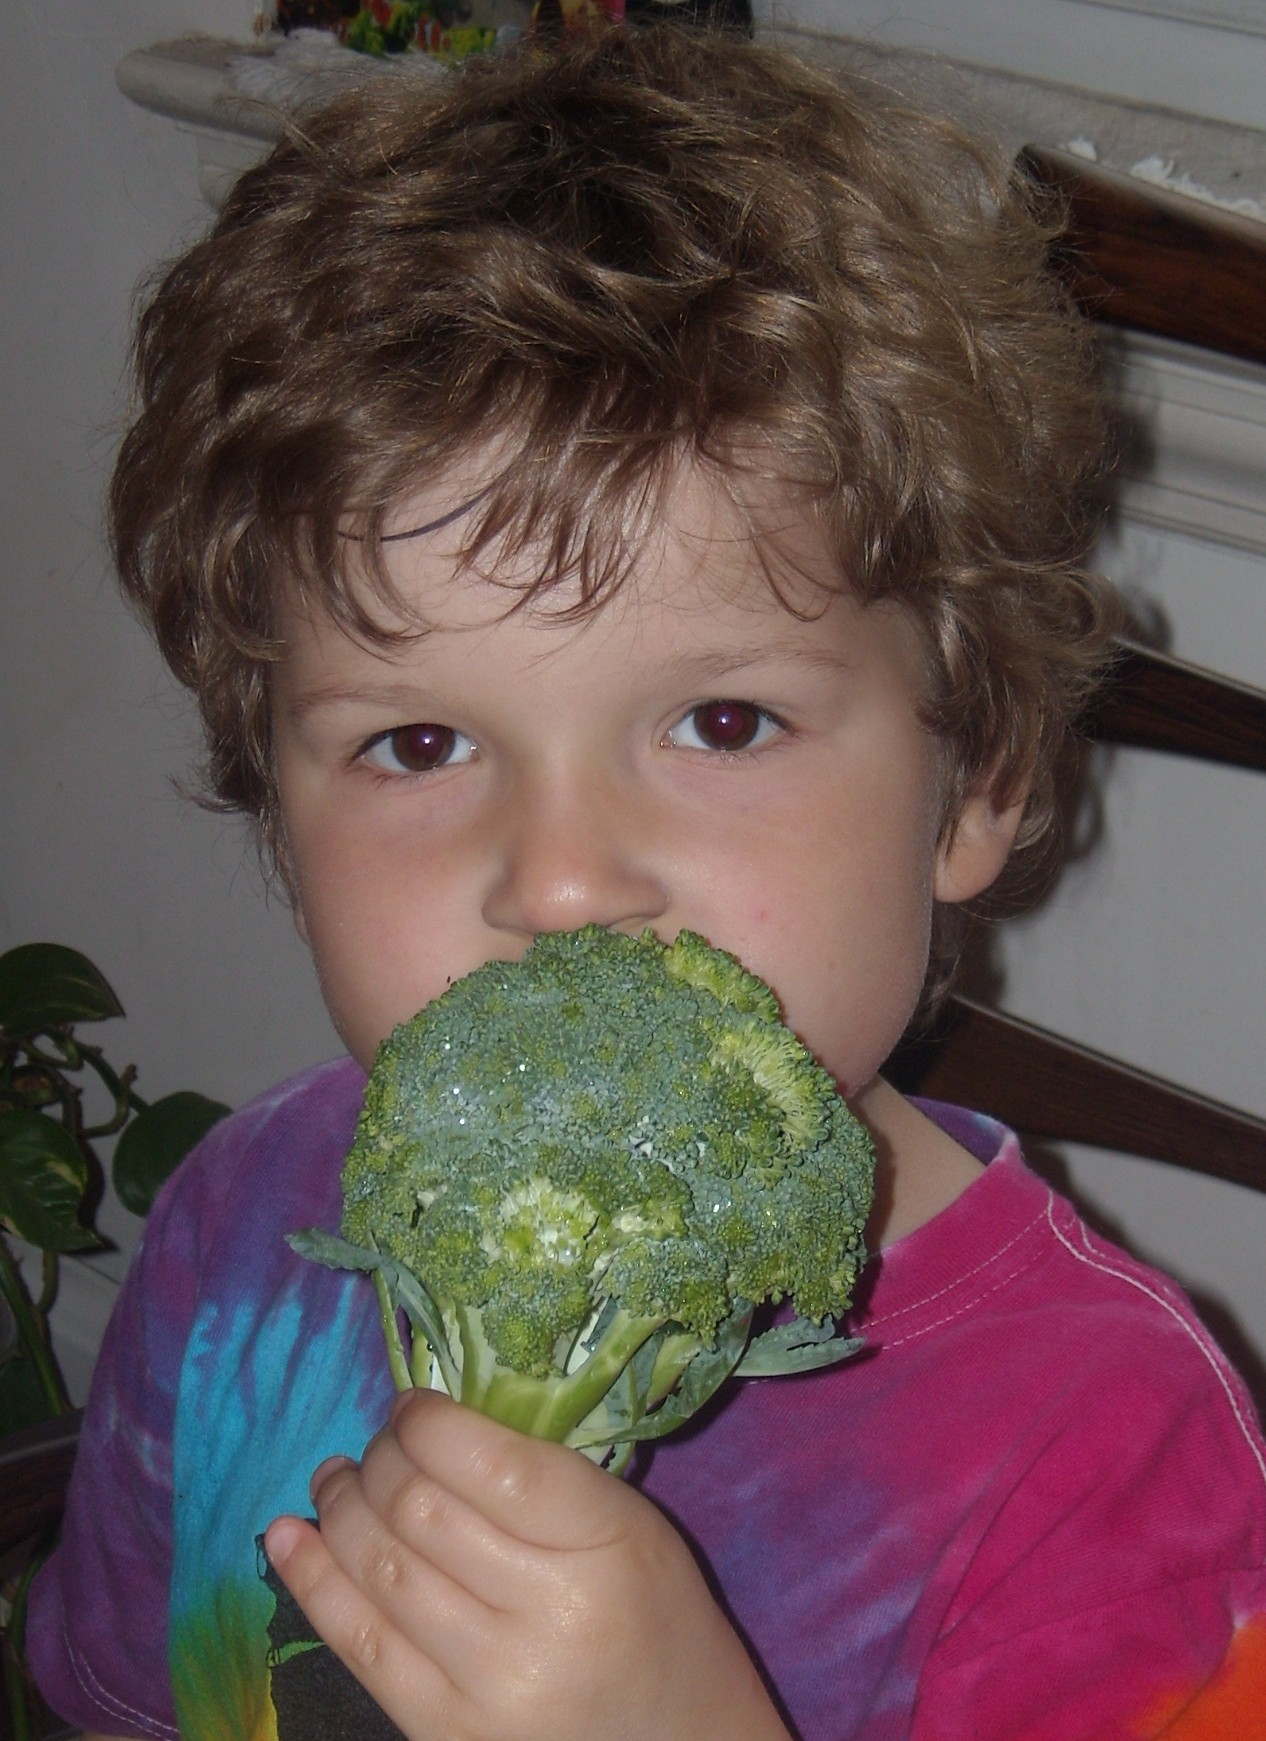 B eating broccoli